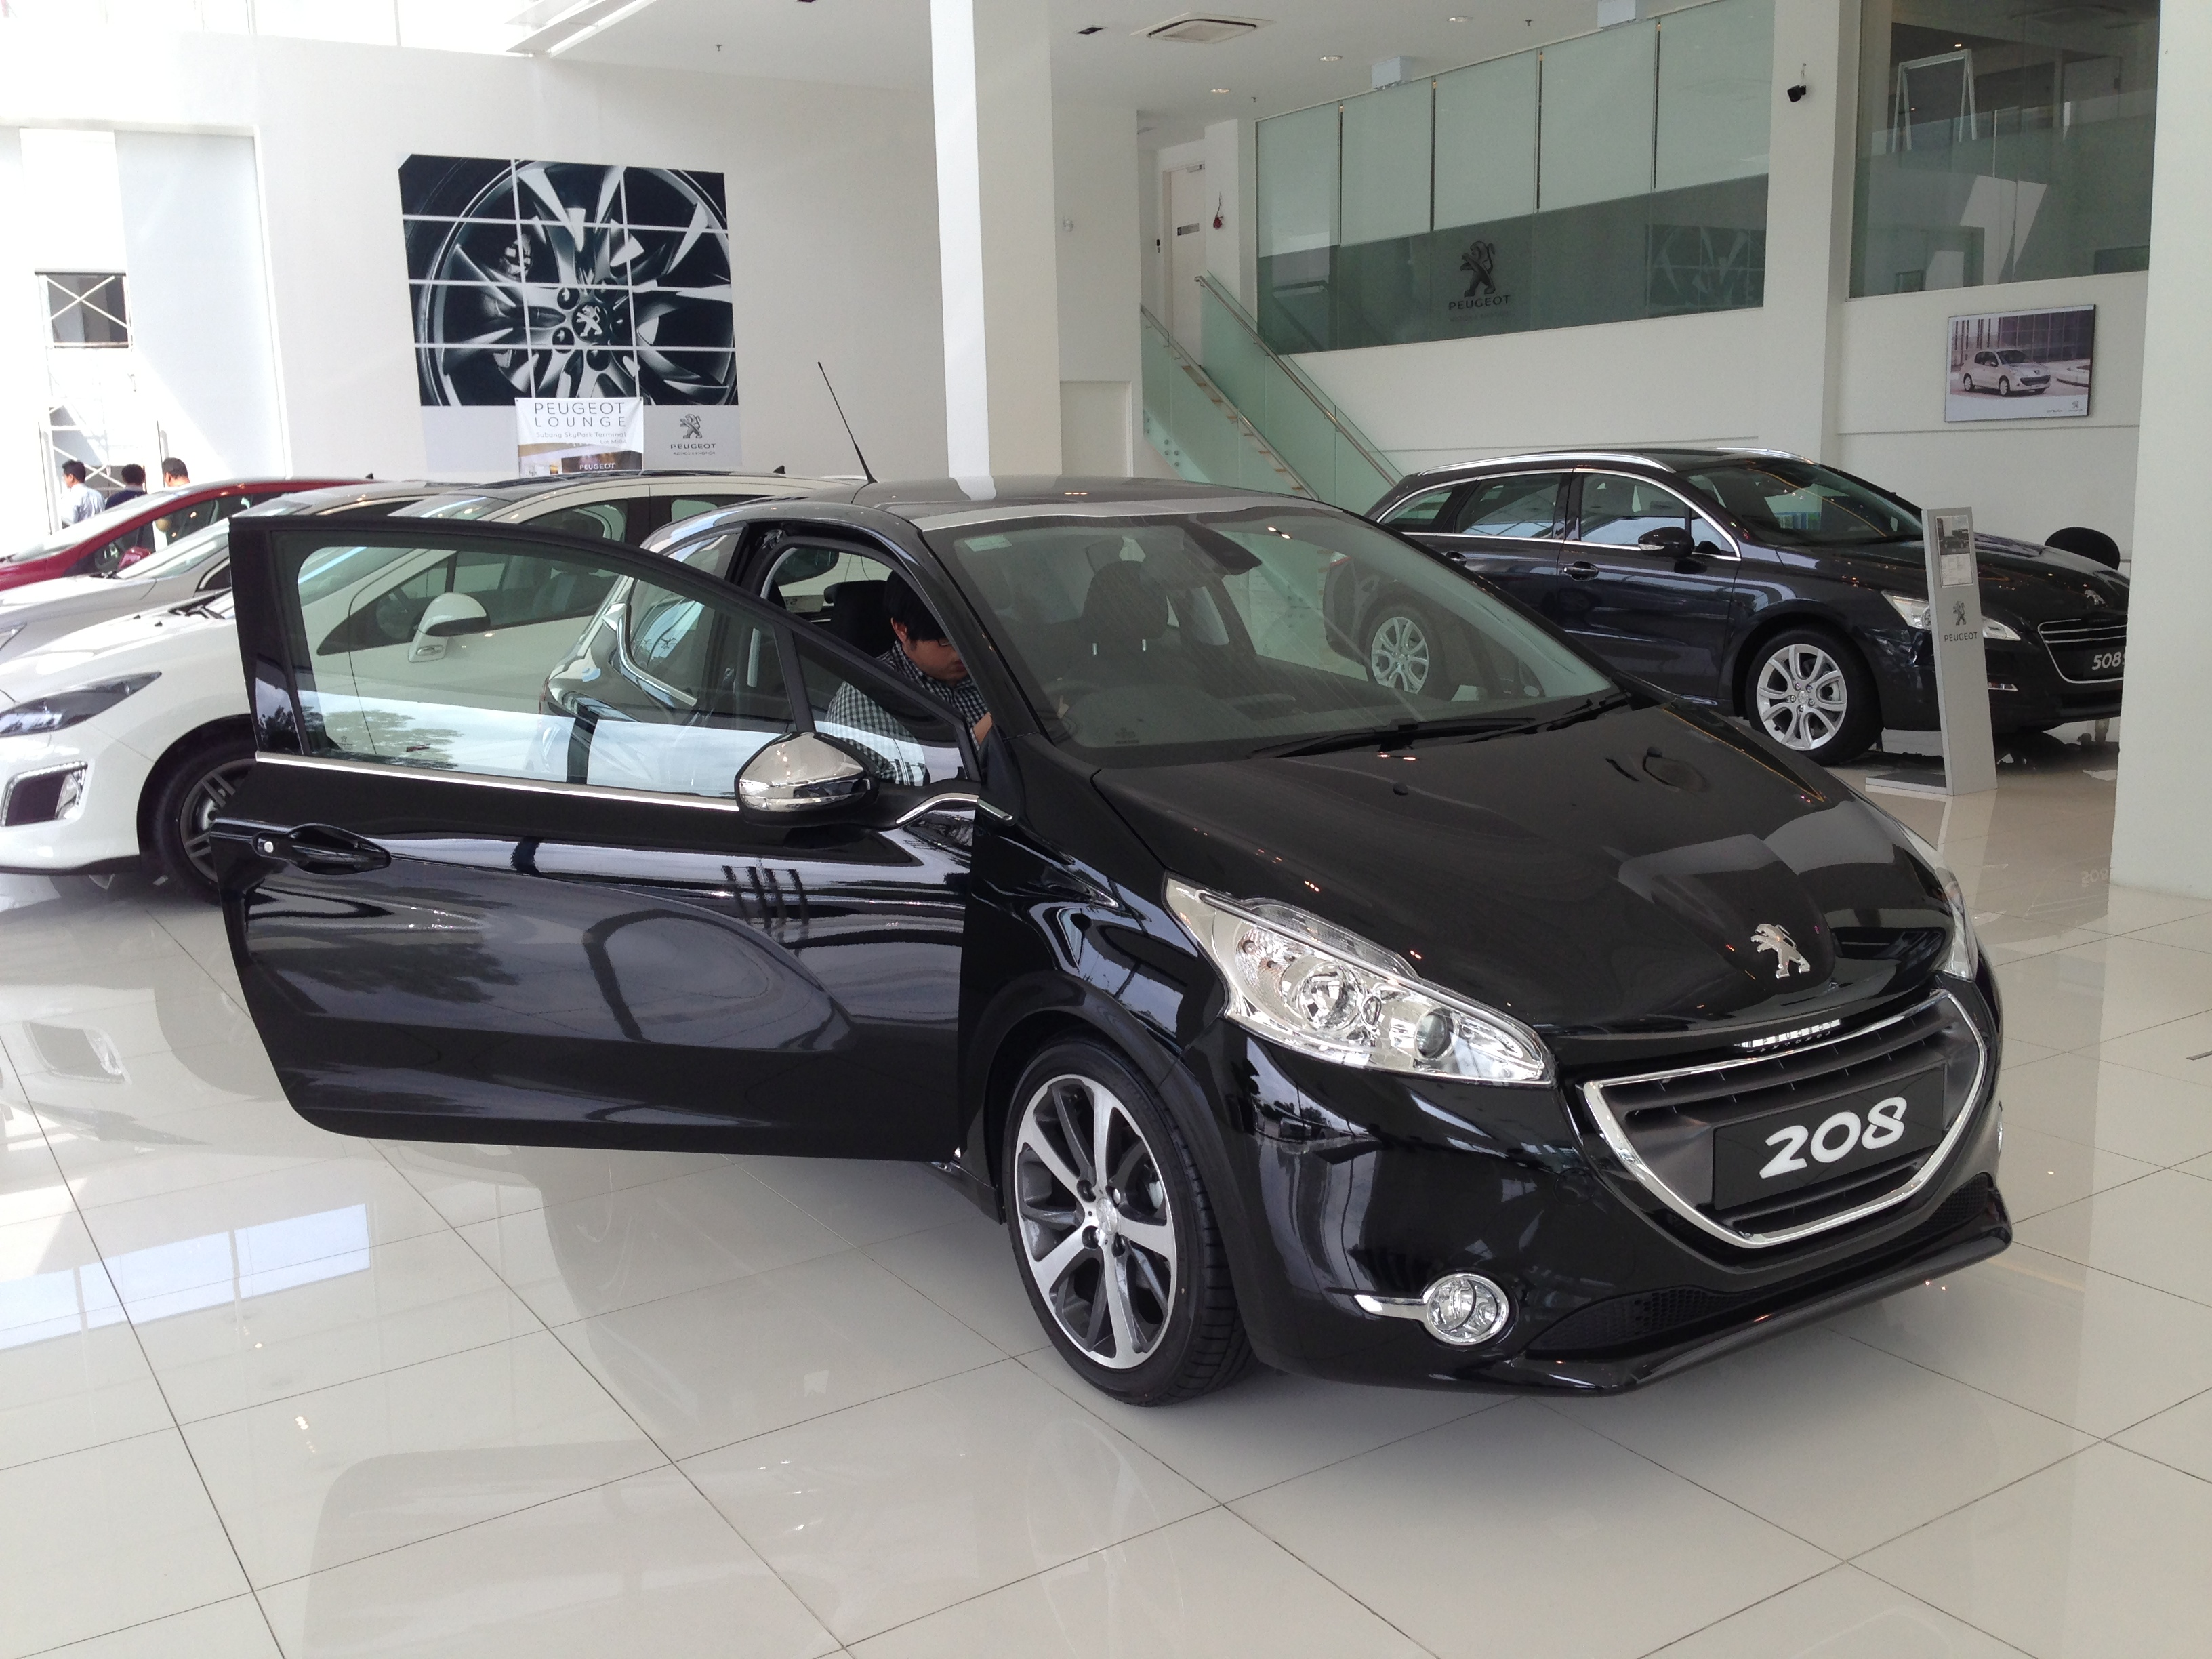 peugeot 208 on display specs unveiled via brochures image 167845. Black Bedroom Furniture Sets. Home Design Ideas